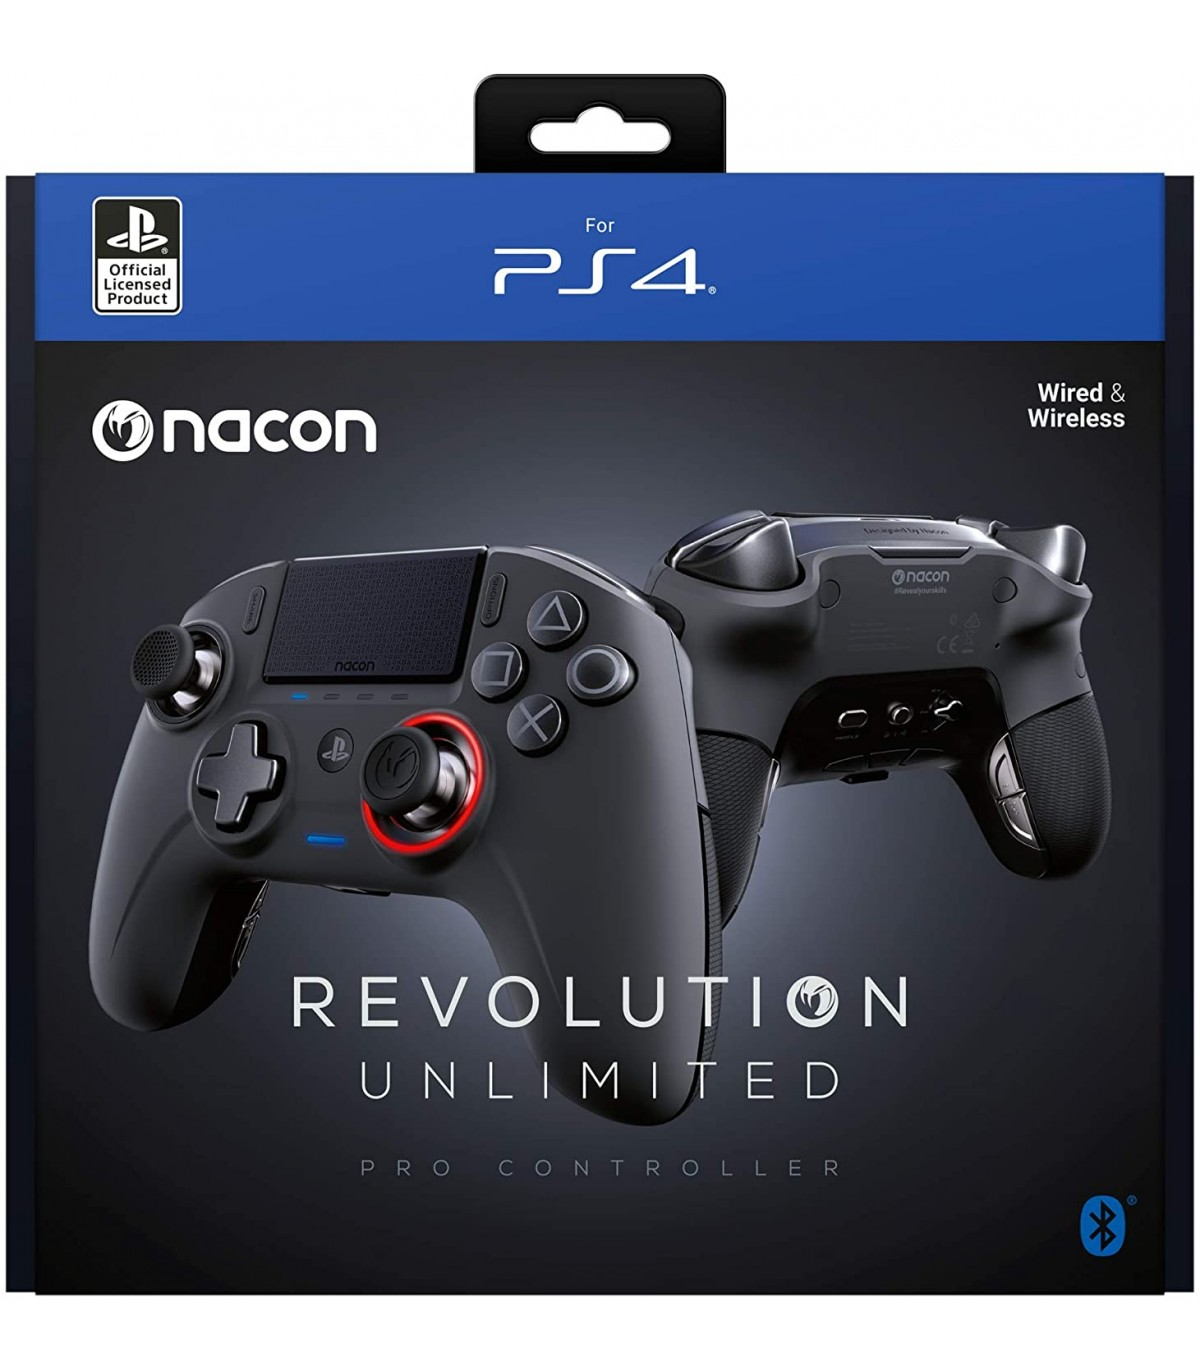 دسته بازی NACON Revolution Unlimited Pro مشکی - PS4 و PC